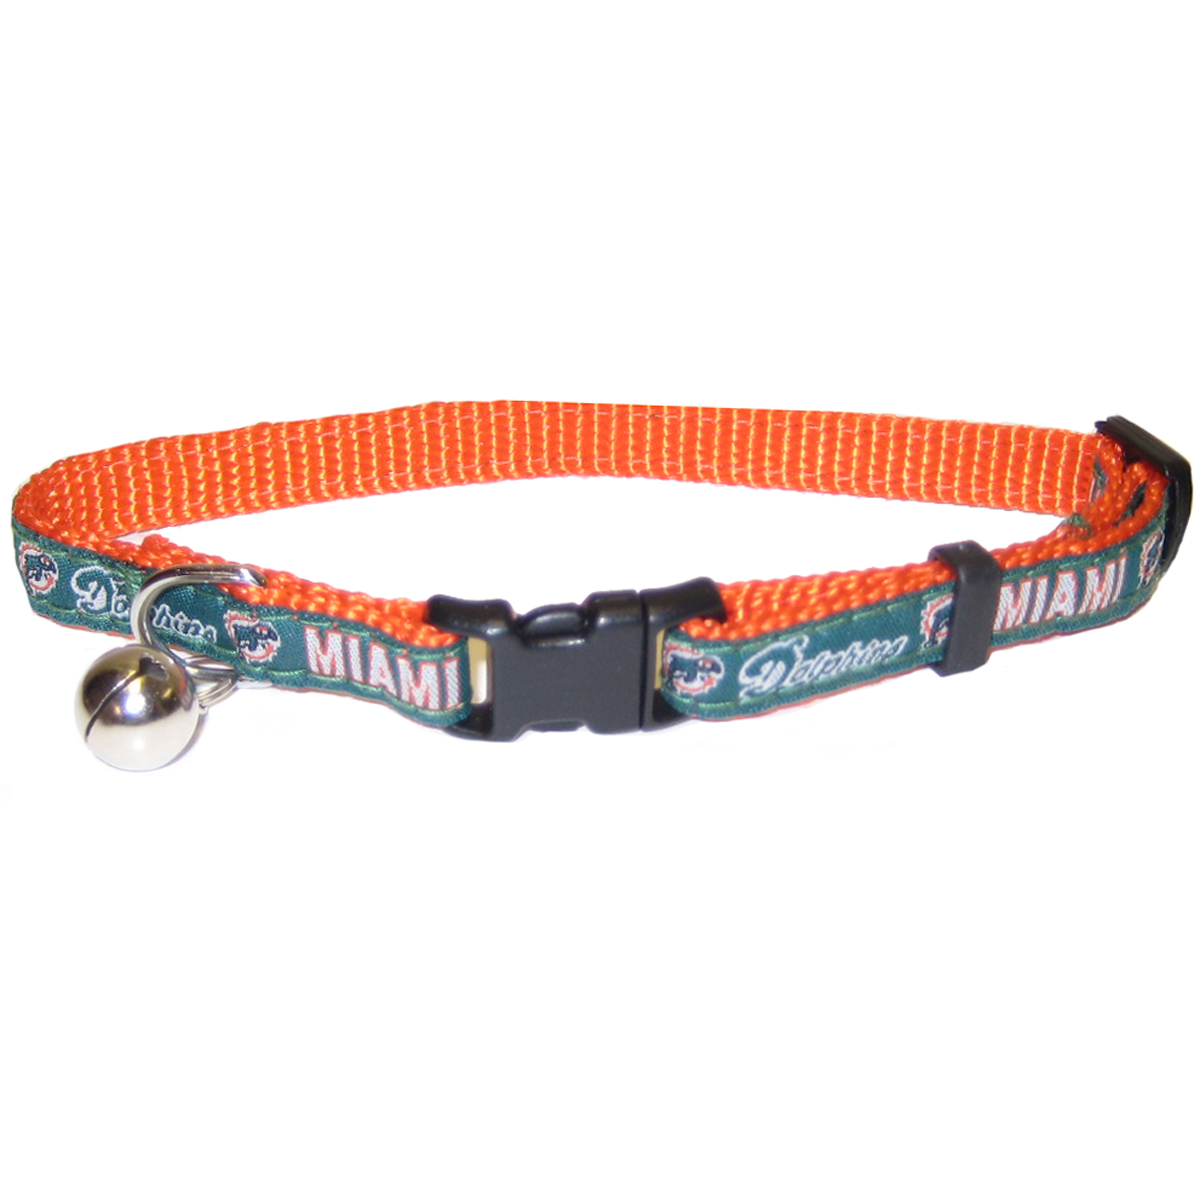 Miami Dolphins CAT Collar DOL-5010